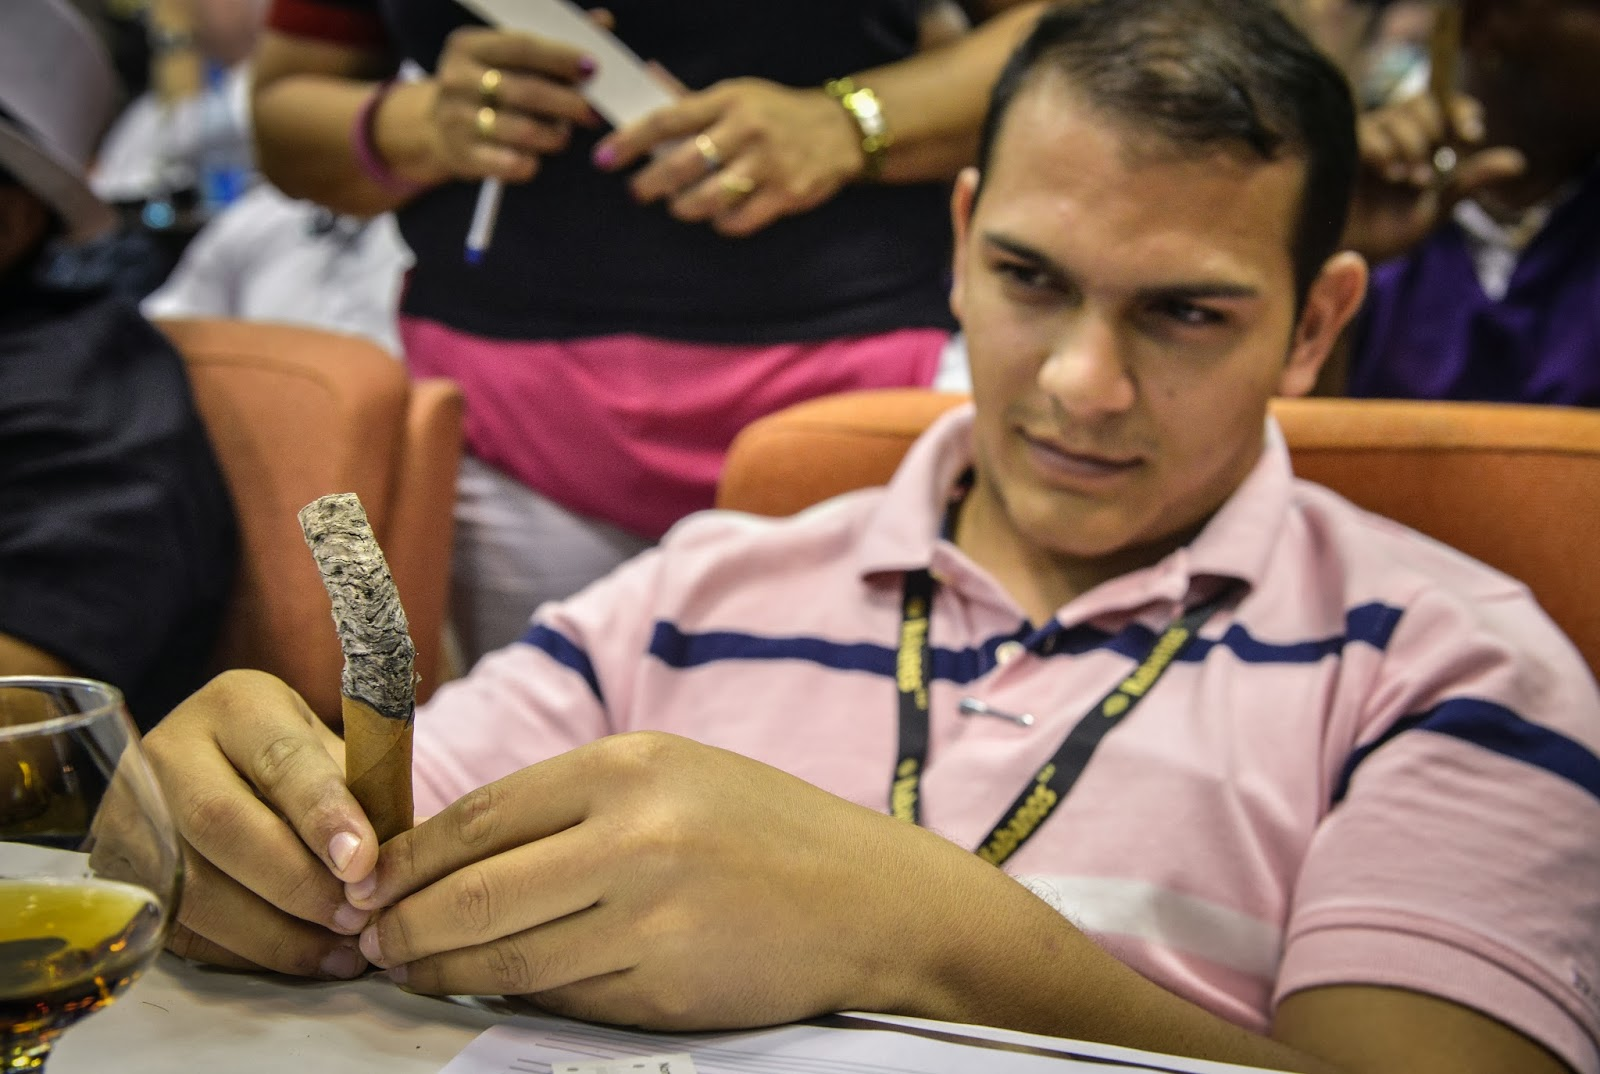 Long-ash Contest at Havana Cigar Festival in Pictures